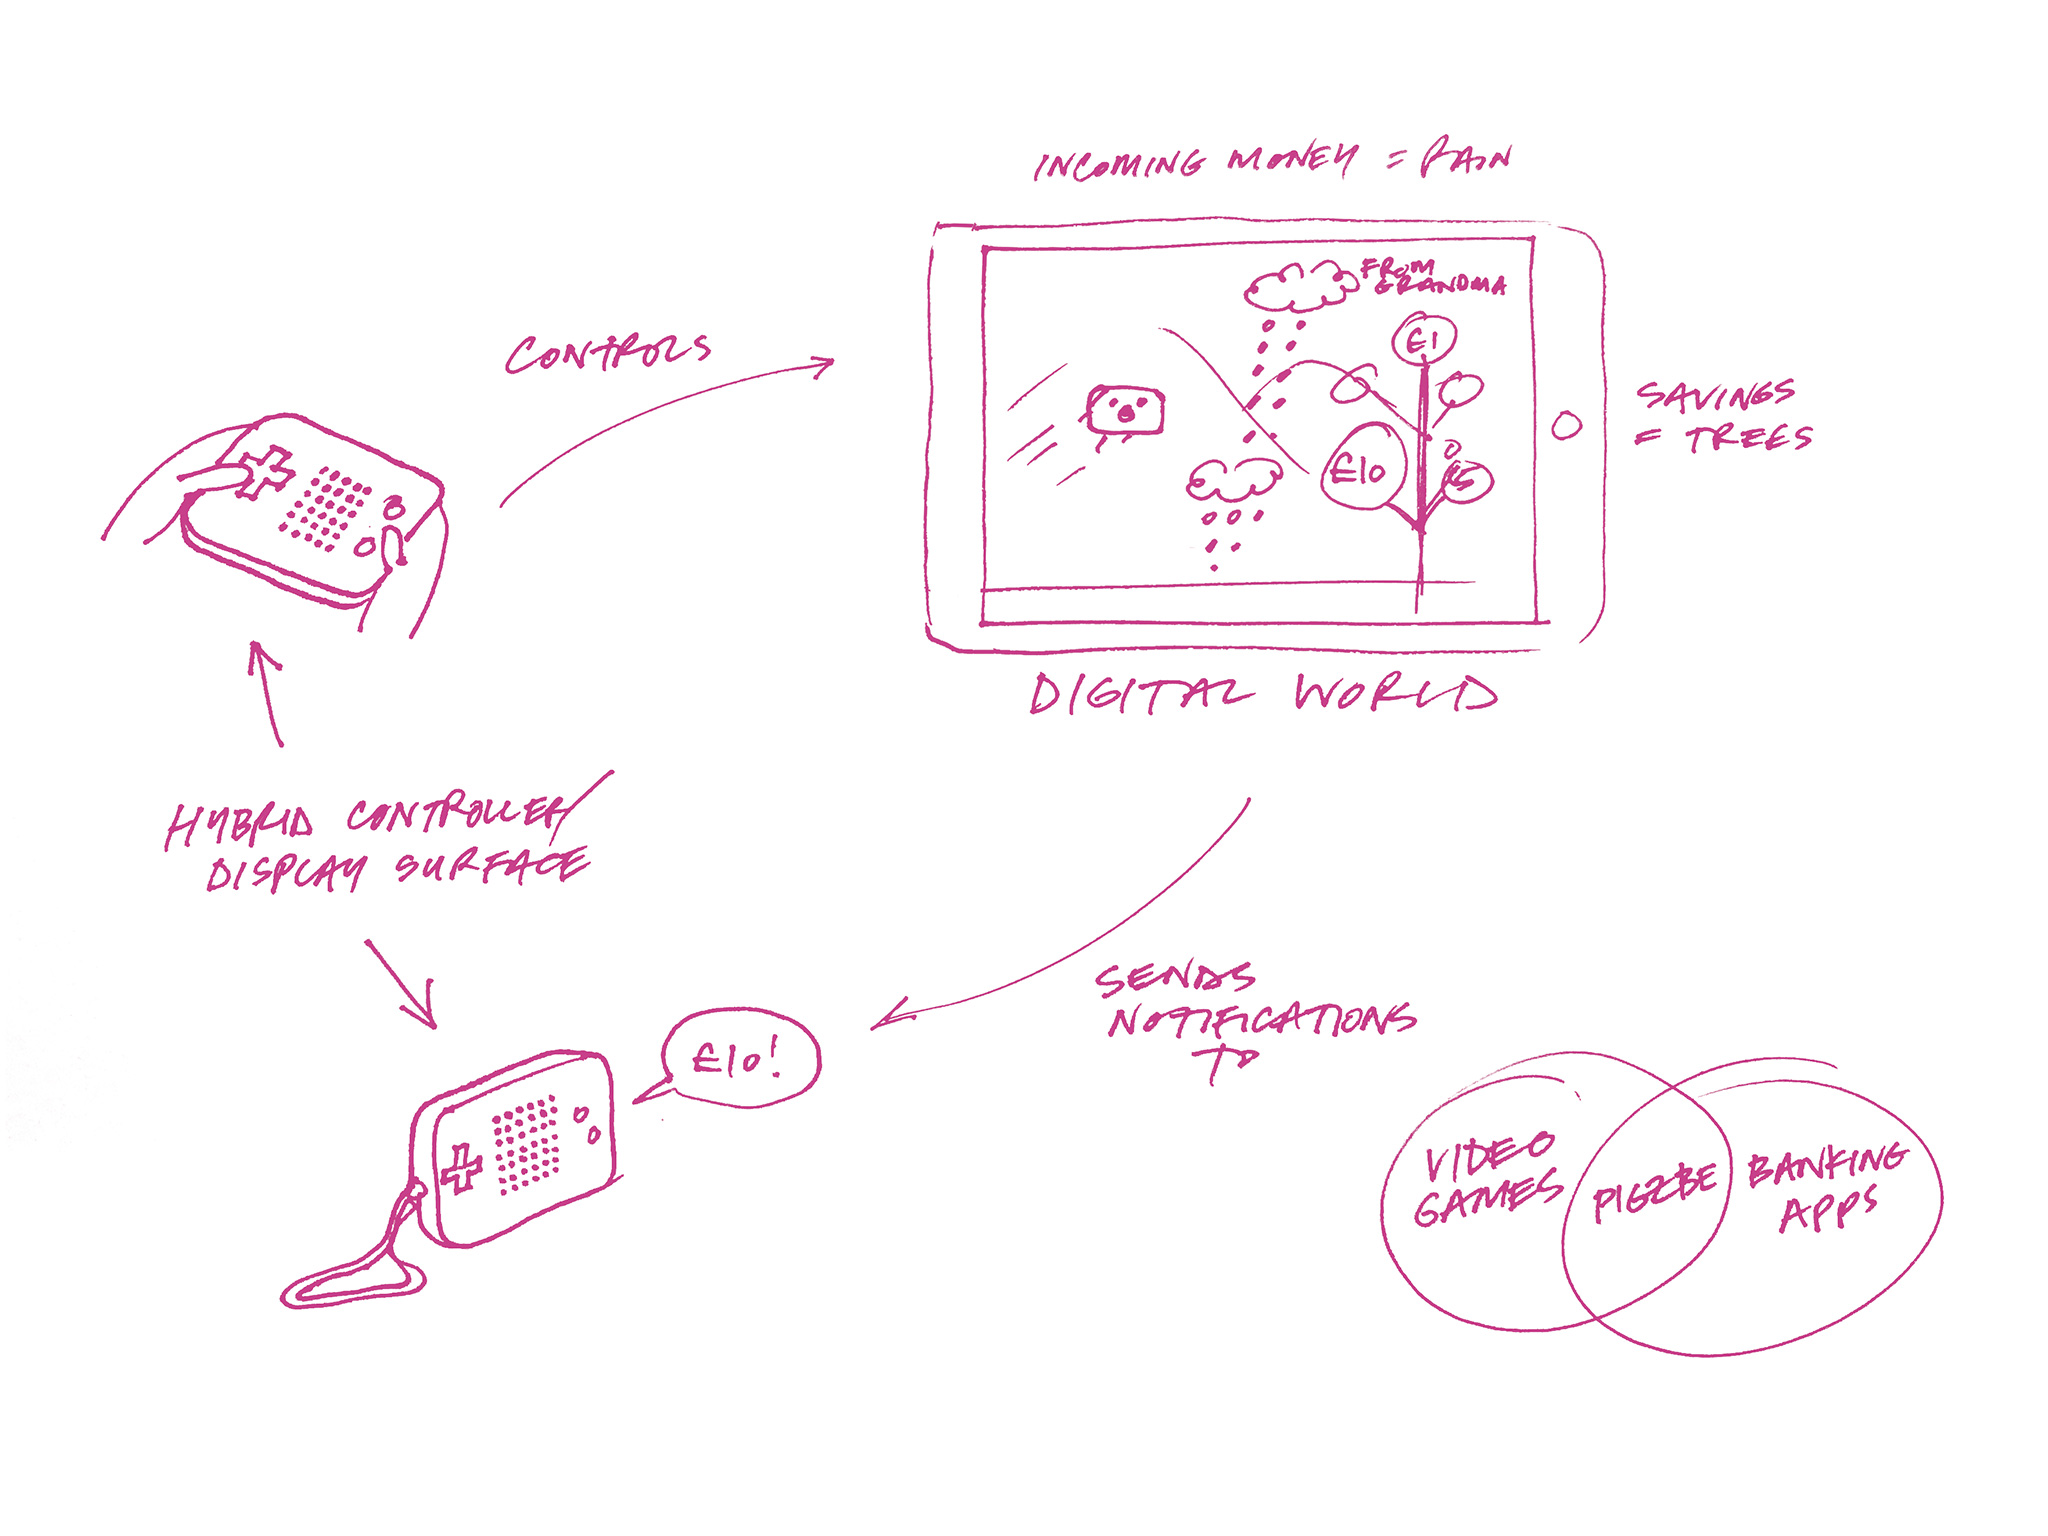 Sketch of Pigzbe world